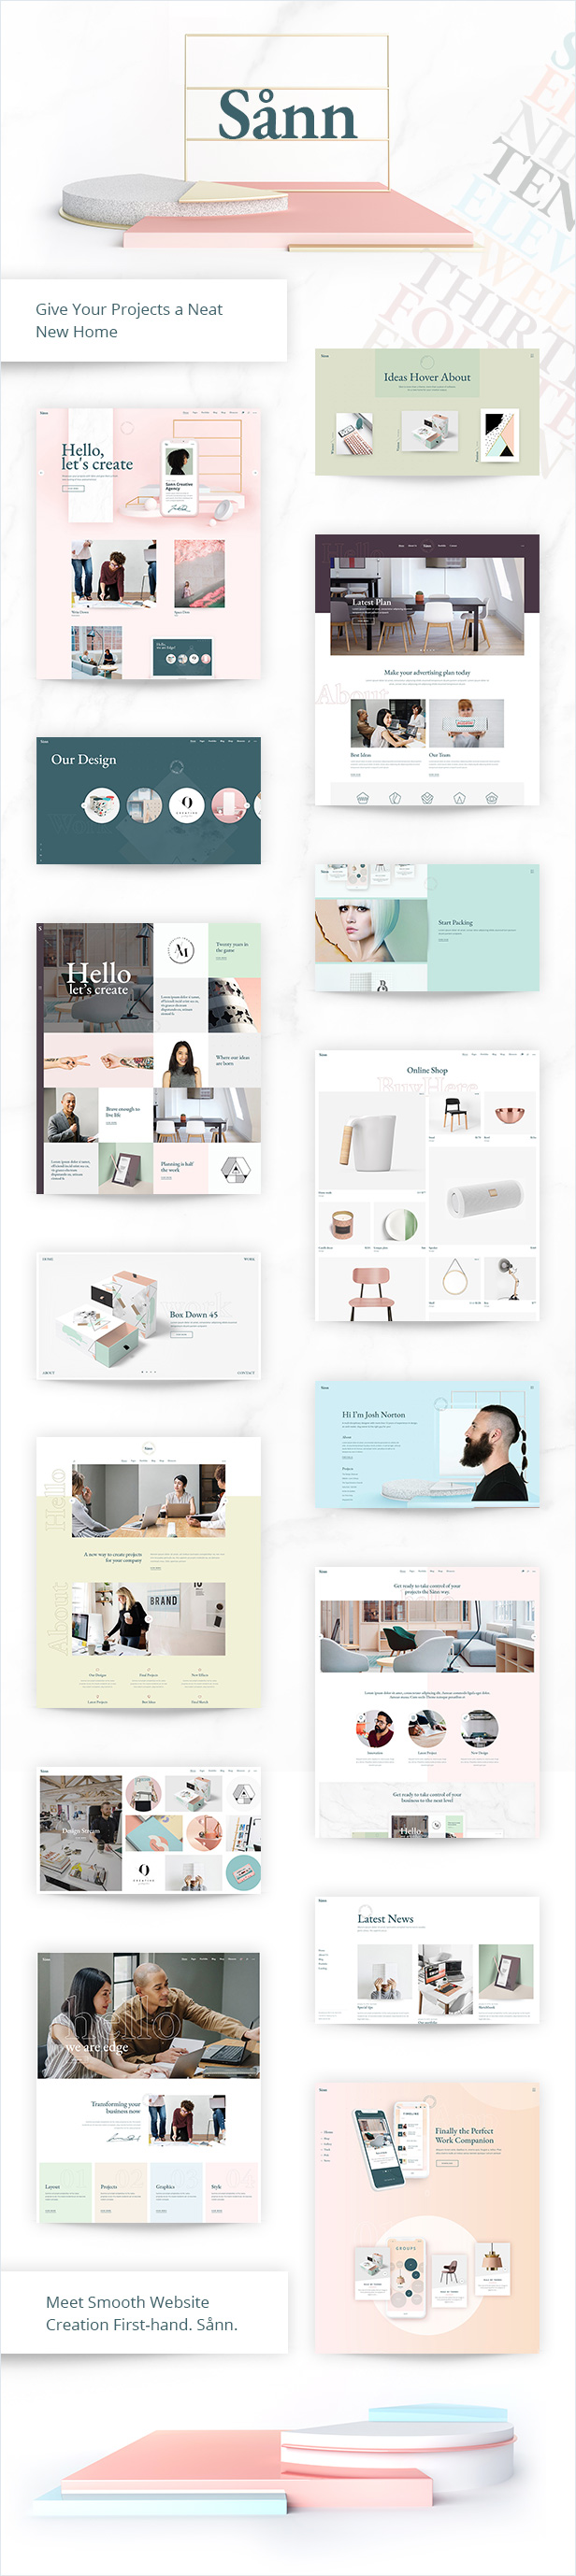 Sånn - Contemporary Creative Agency Theme - 1